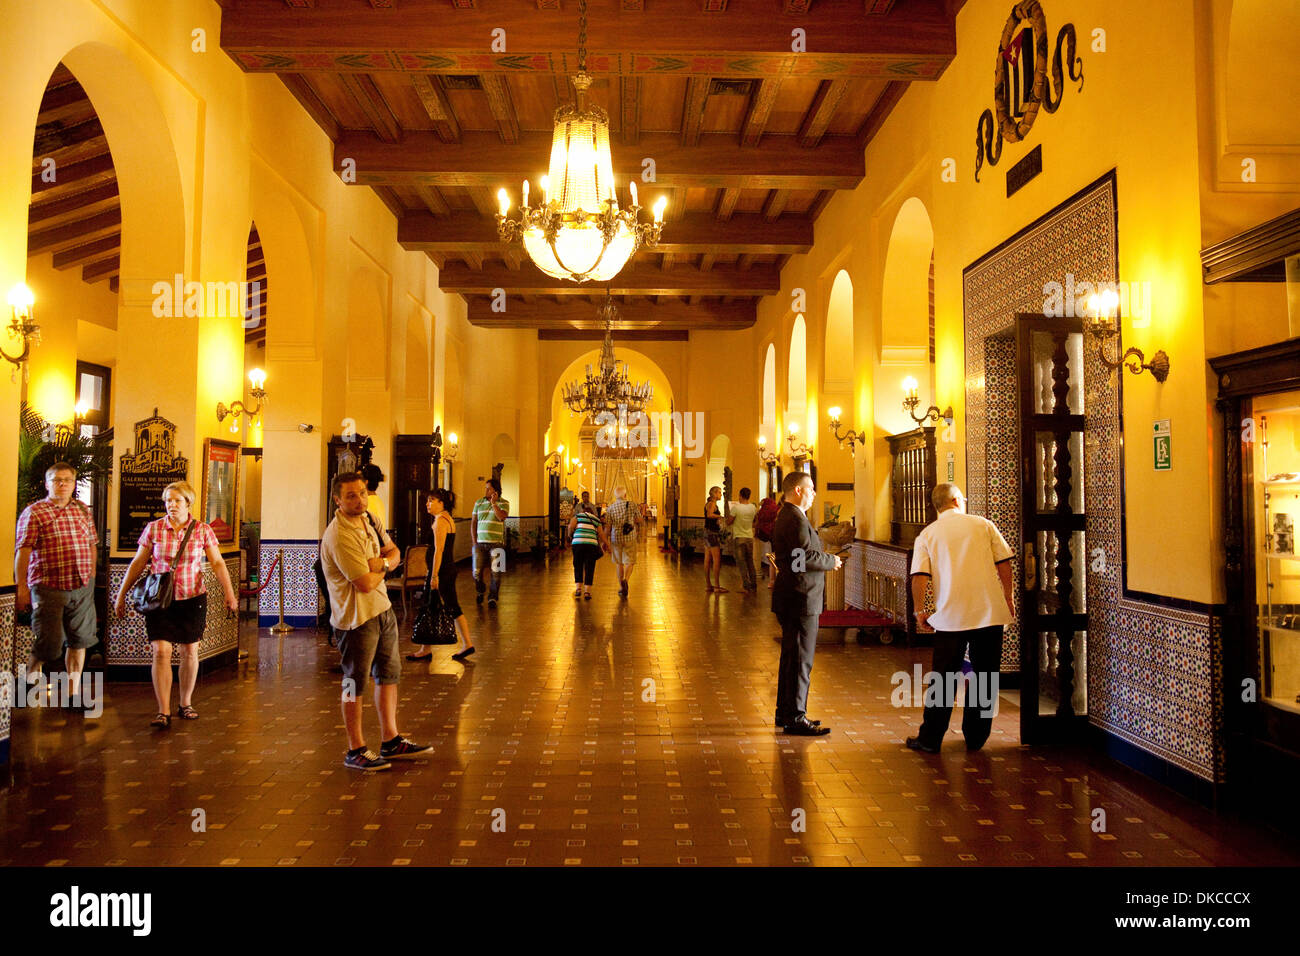 Stock photo the lobby of the hotel nacional luxury hotel in havana cuba caribbean